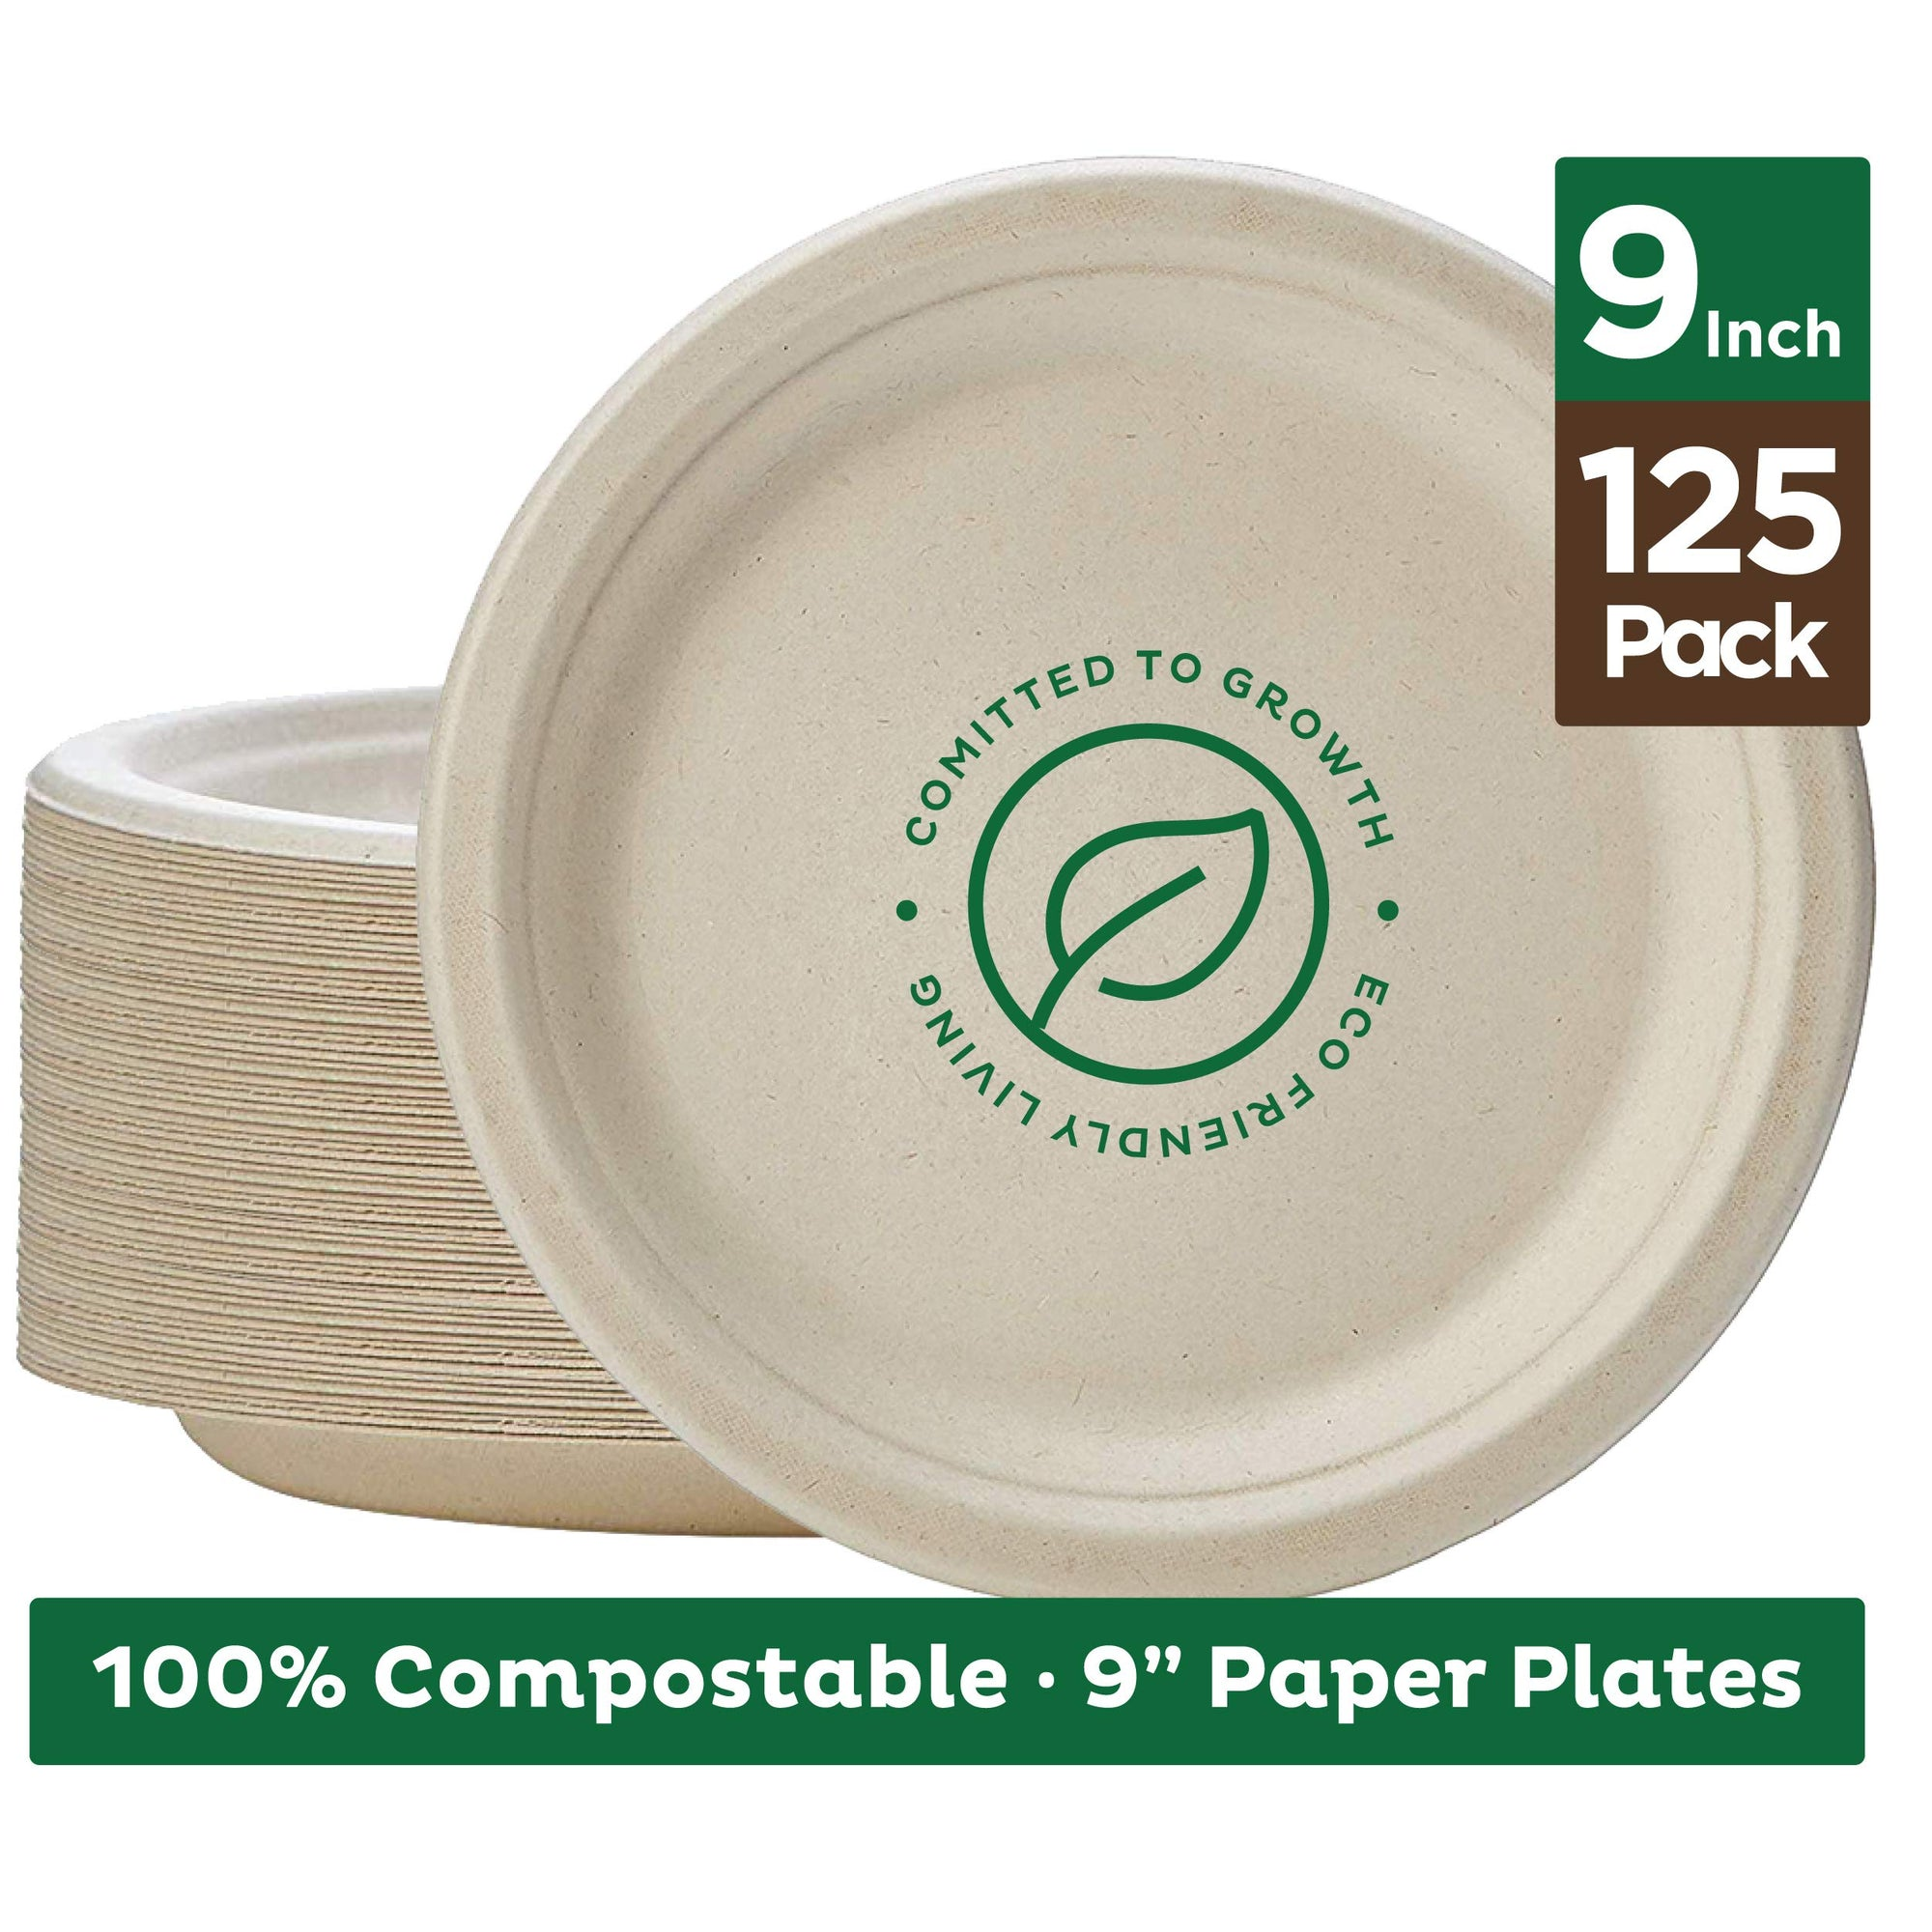 "Stack Man 100% Compostable 9"" Paper Plates [125-Pack] Heavy Duty Eco-Friendly Made of Sugar Cane"